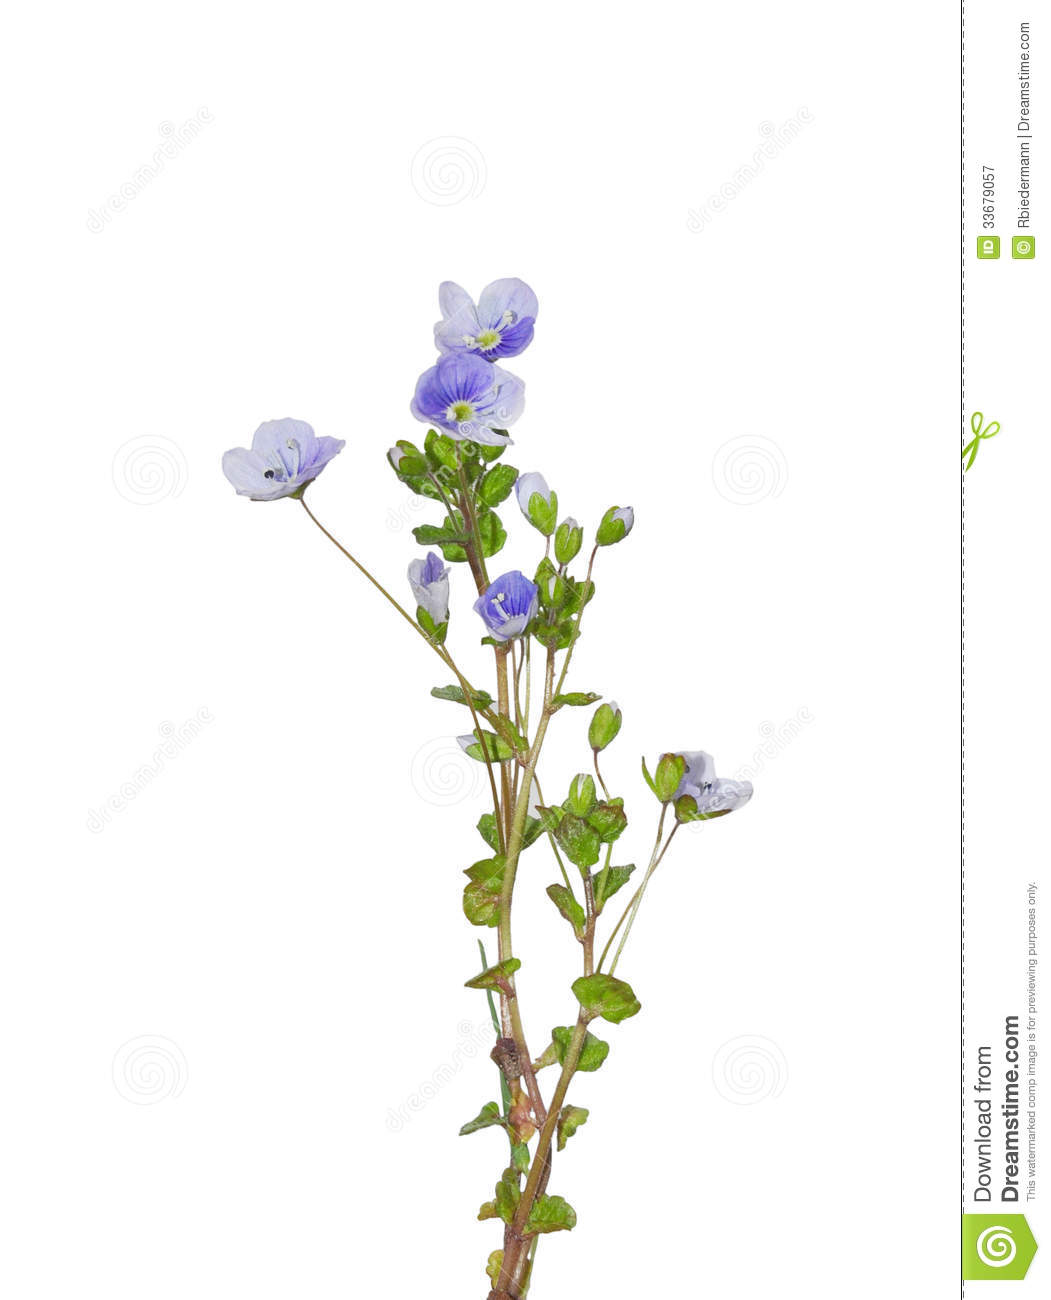 Slender speedwell veronica filiformis stock image image of download slender speedwell veronica filiformis stock image image of veronica white mightylinksfo